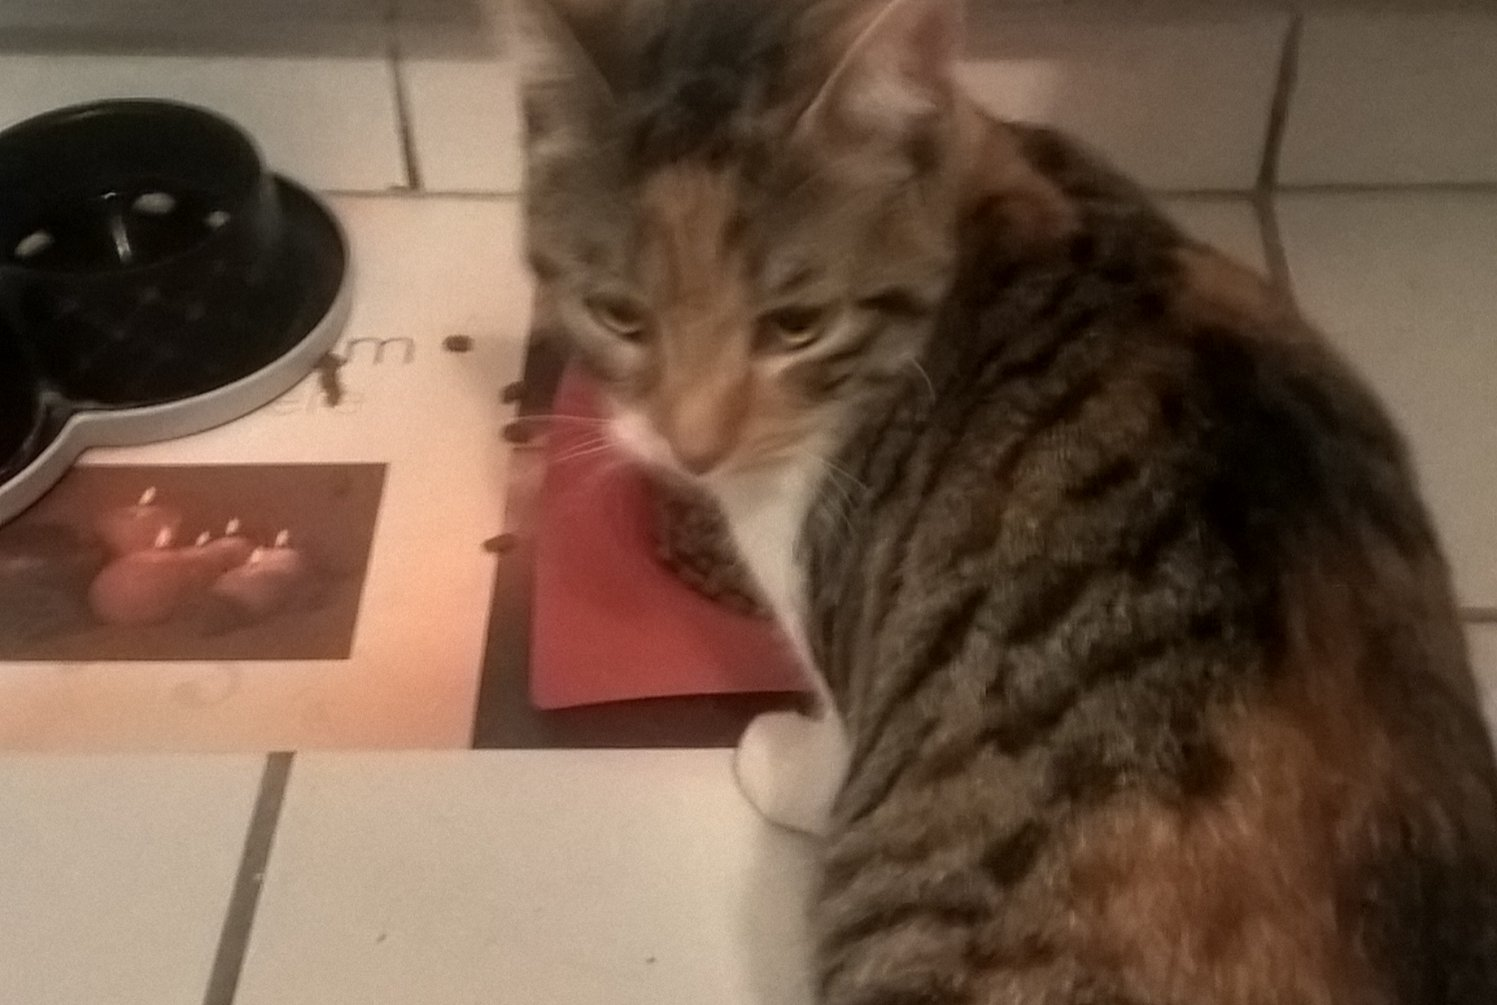 Discovery alert Cat miscegenation Female , Between 7 and 9 months La Balme-de-Sillingy France